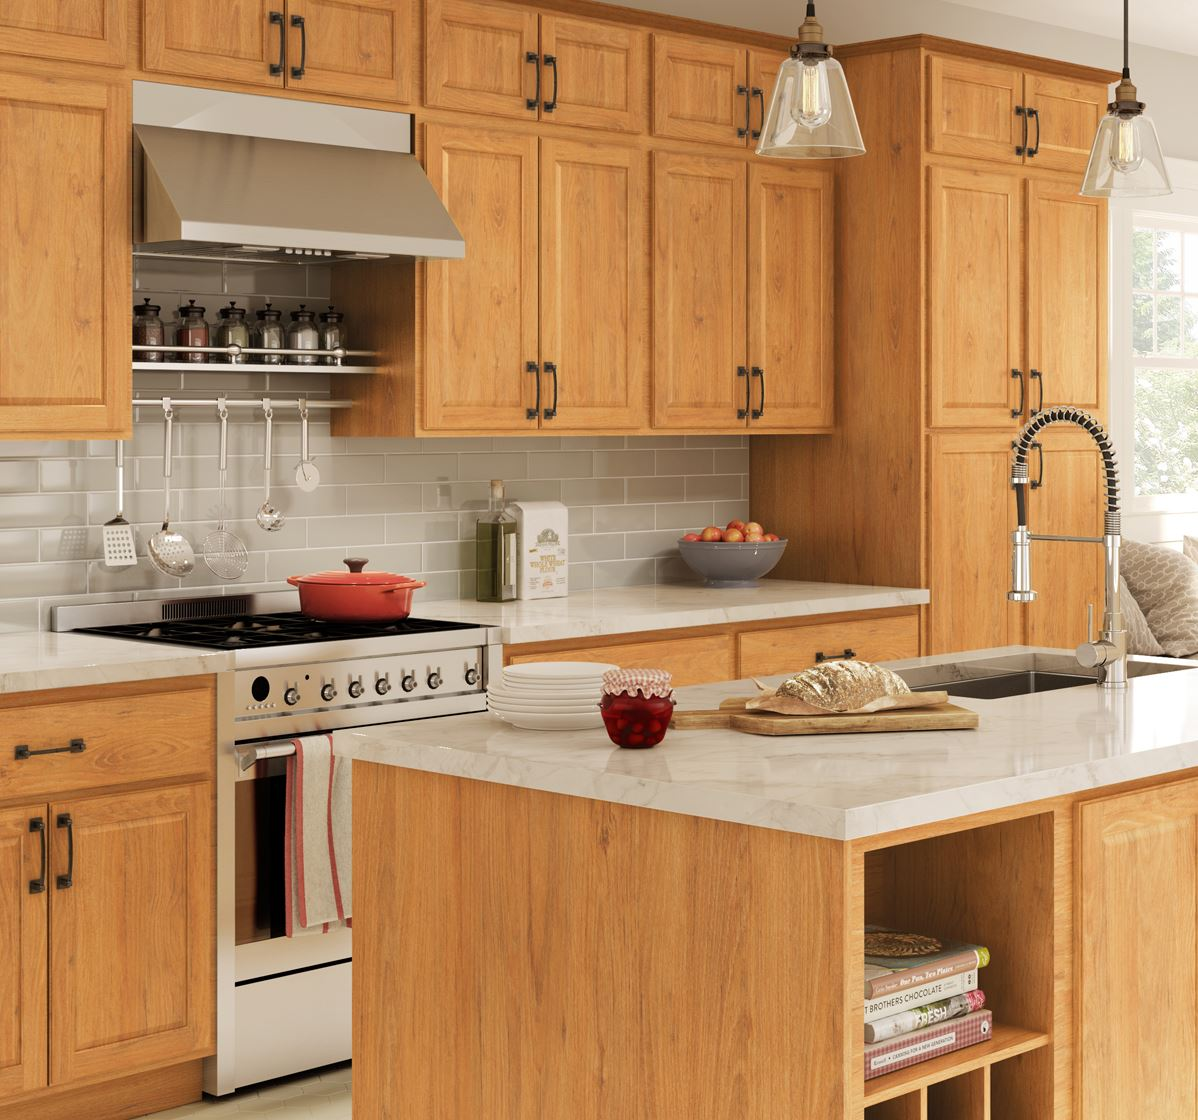 Painting Or Staining Oak Cabinetry Toyota Tundra Forum